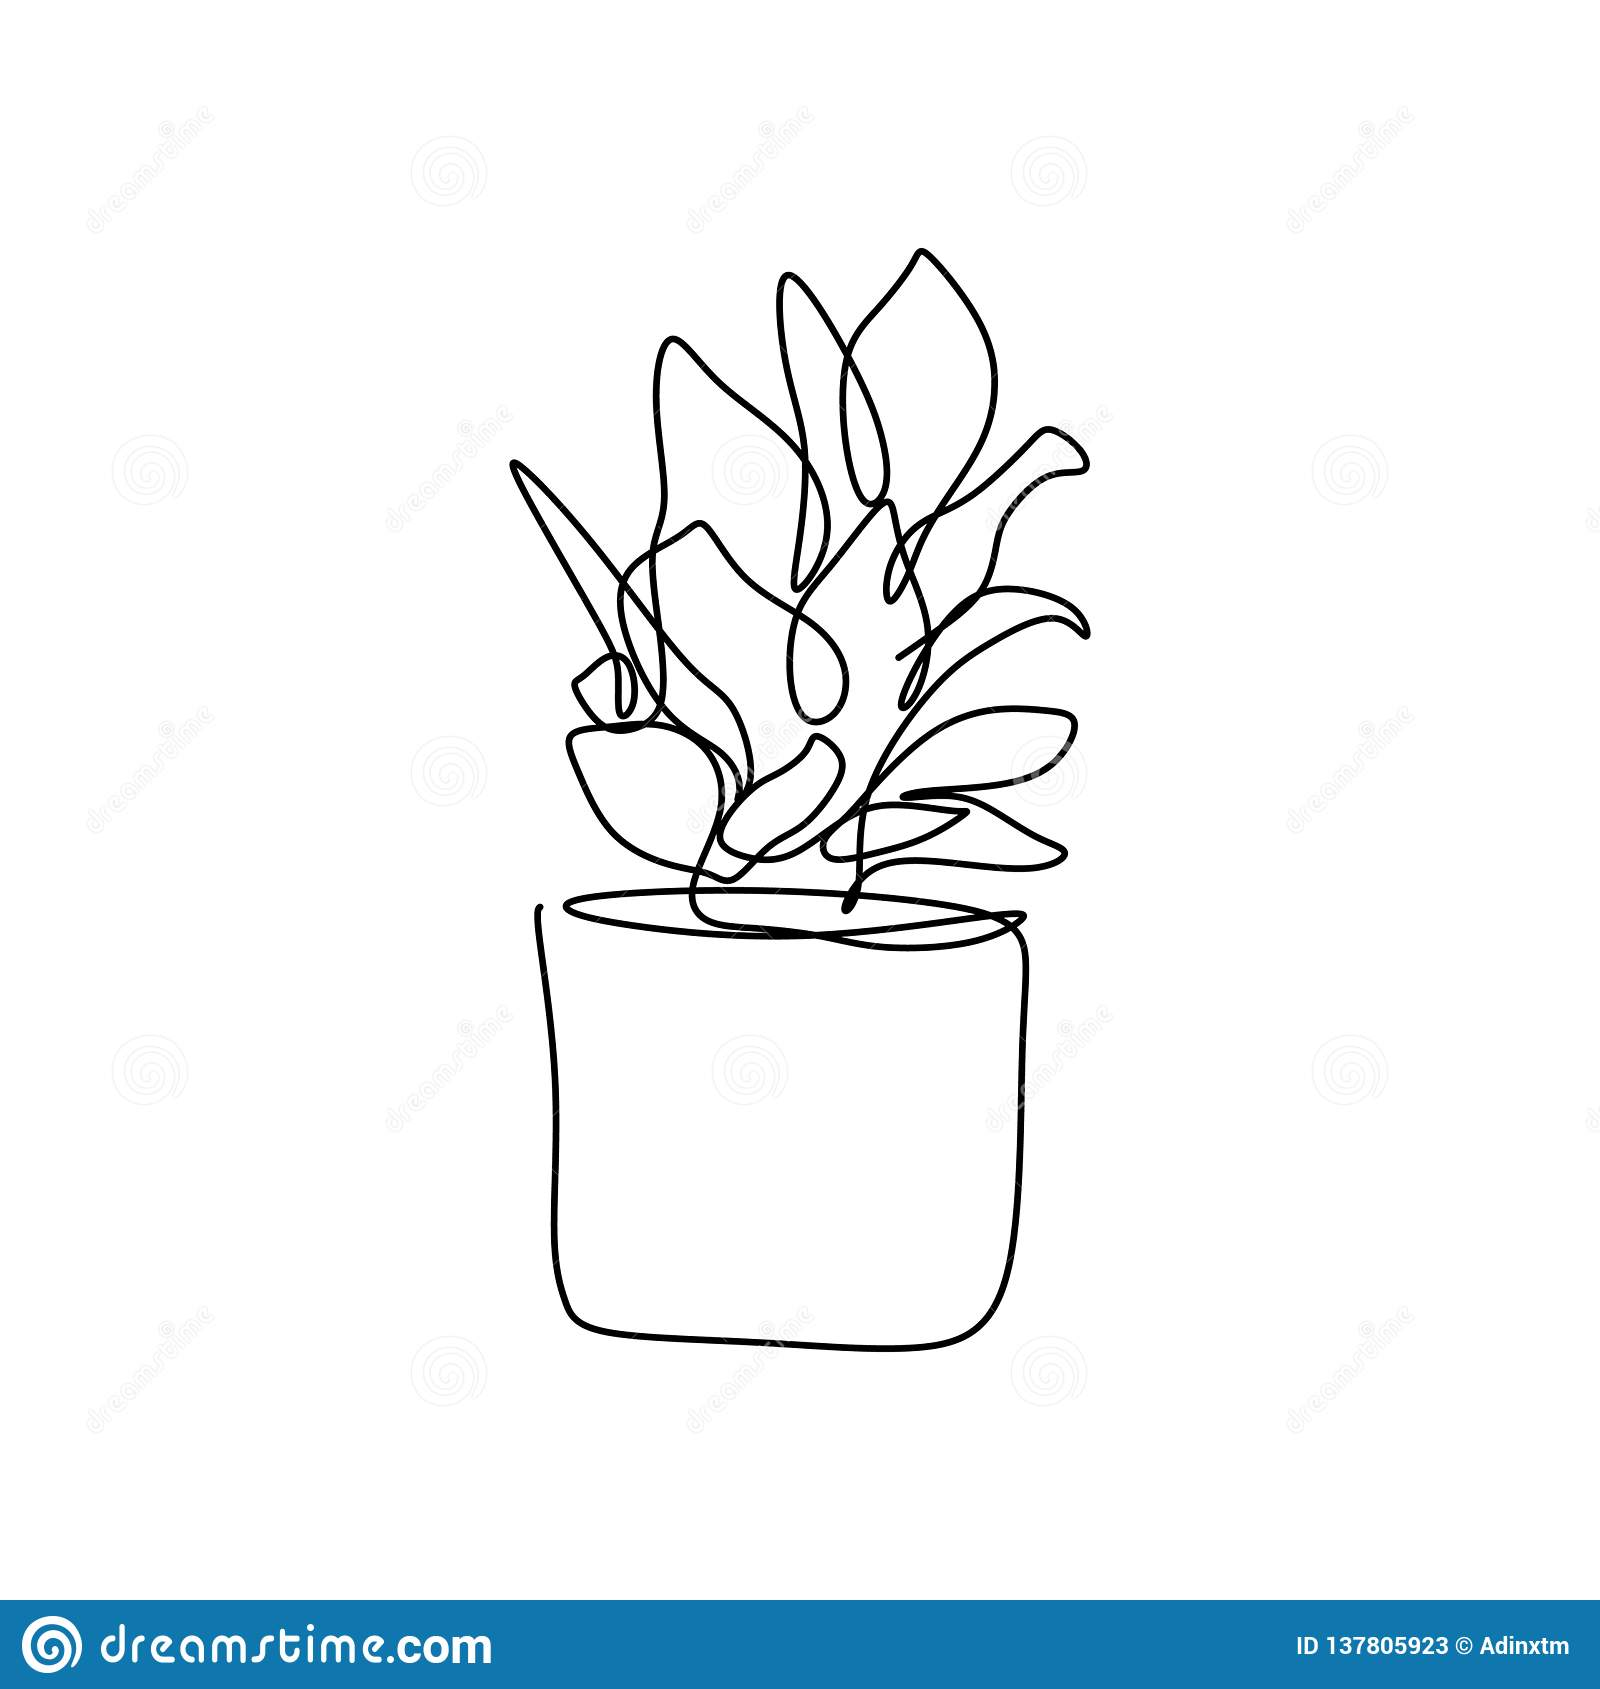 Plant In The Pot One Line Drawing Vector Illustration Continuous Stroke Minimalist Design For Wall Decor Isolated On White Stock Vector Illustration Of Graphic Sketch 137805923